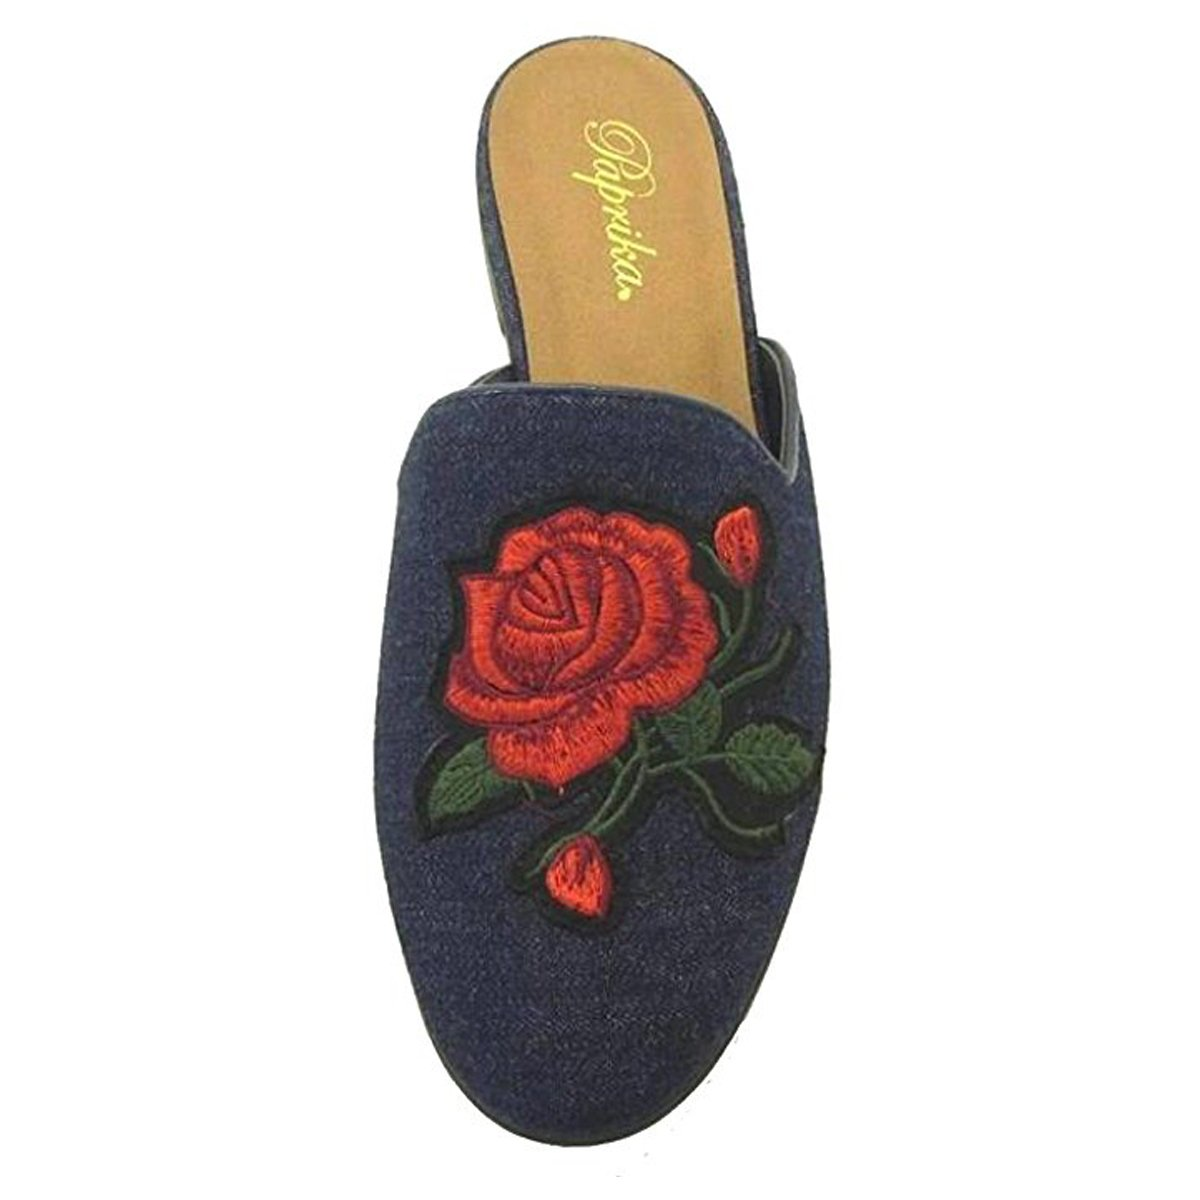 Paprika Women's Embroidered Floral Slip On Mule Loafer Slipper Flats (5.5 B(M) US, Dark Blue)